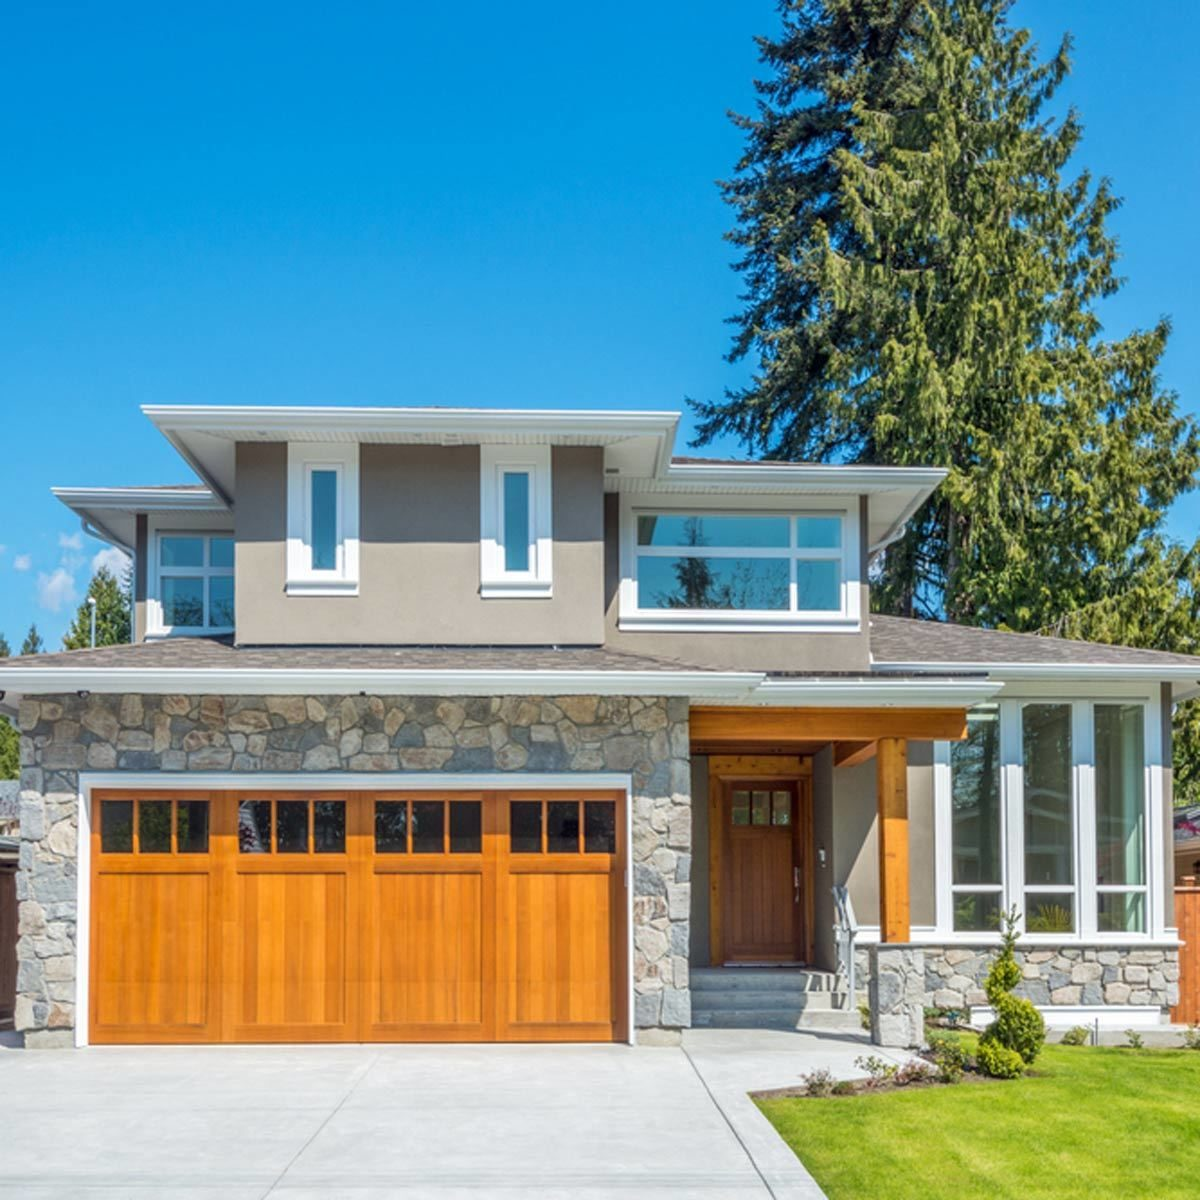 Remodeling Ideas: Garage Door Replacement